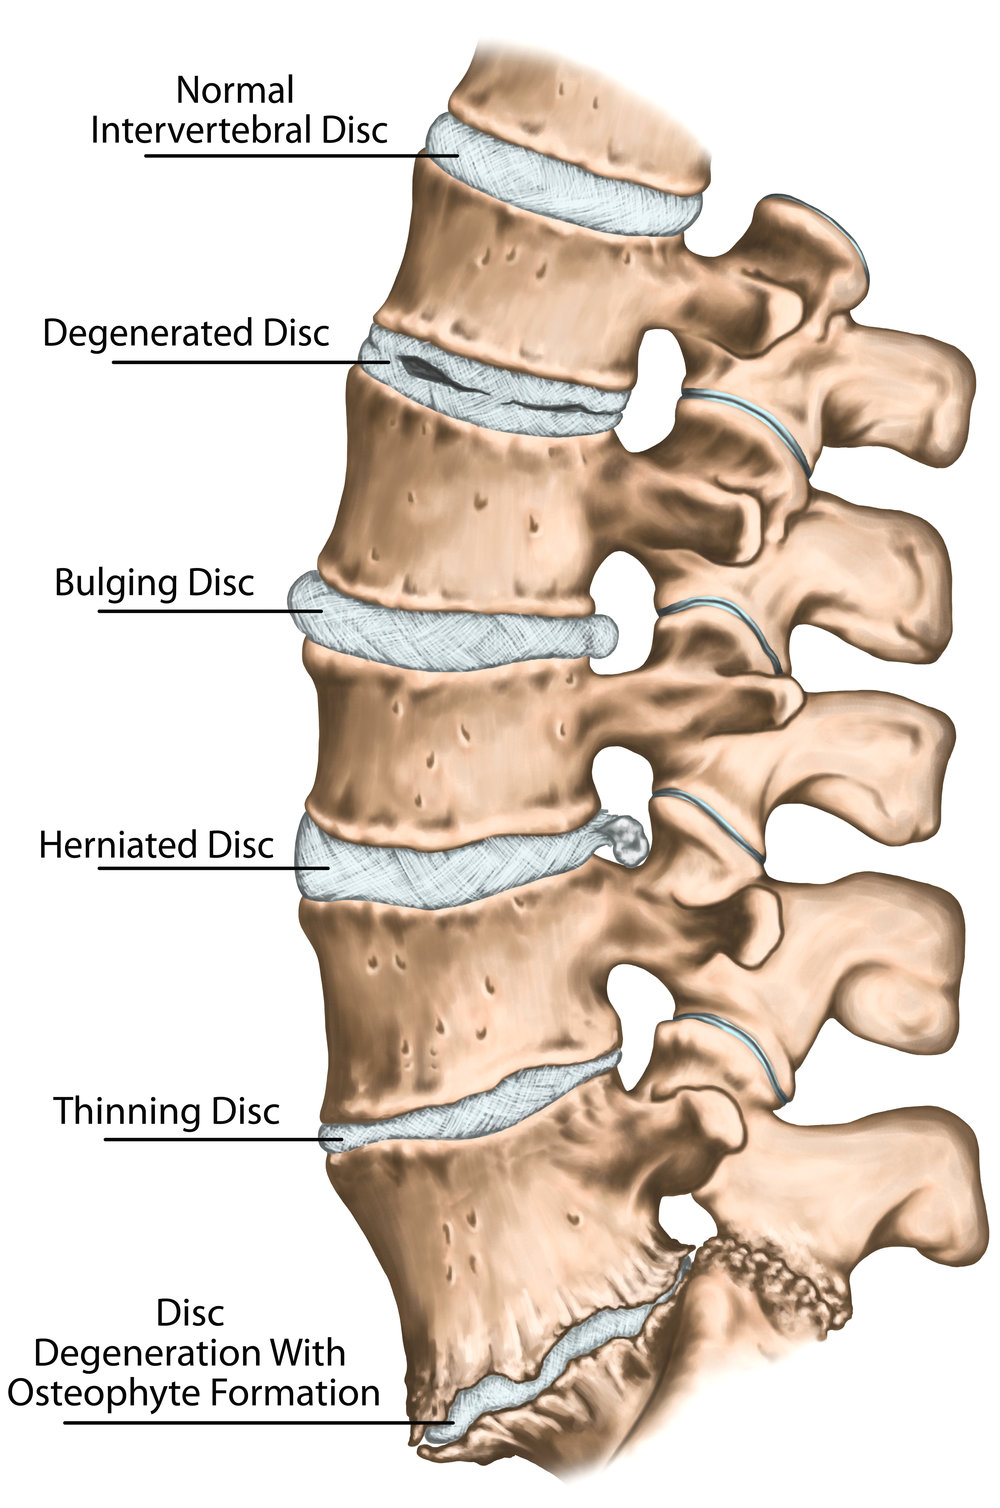 These injuries can result in pain down one or both legs. Disc injuries also tend to have an extension directional preference. You can use this preference to treat the injury and alleviate symptoms. -